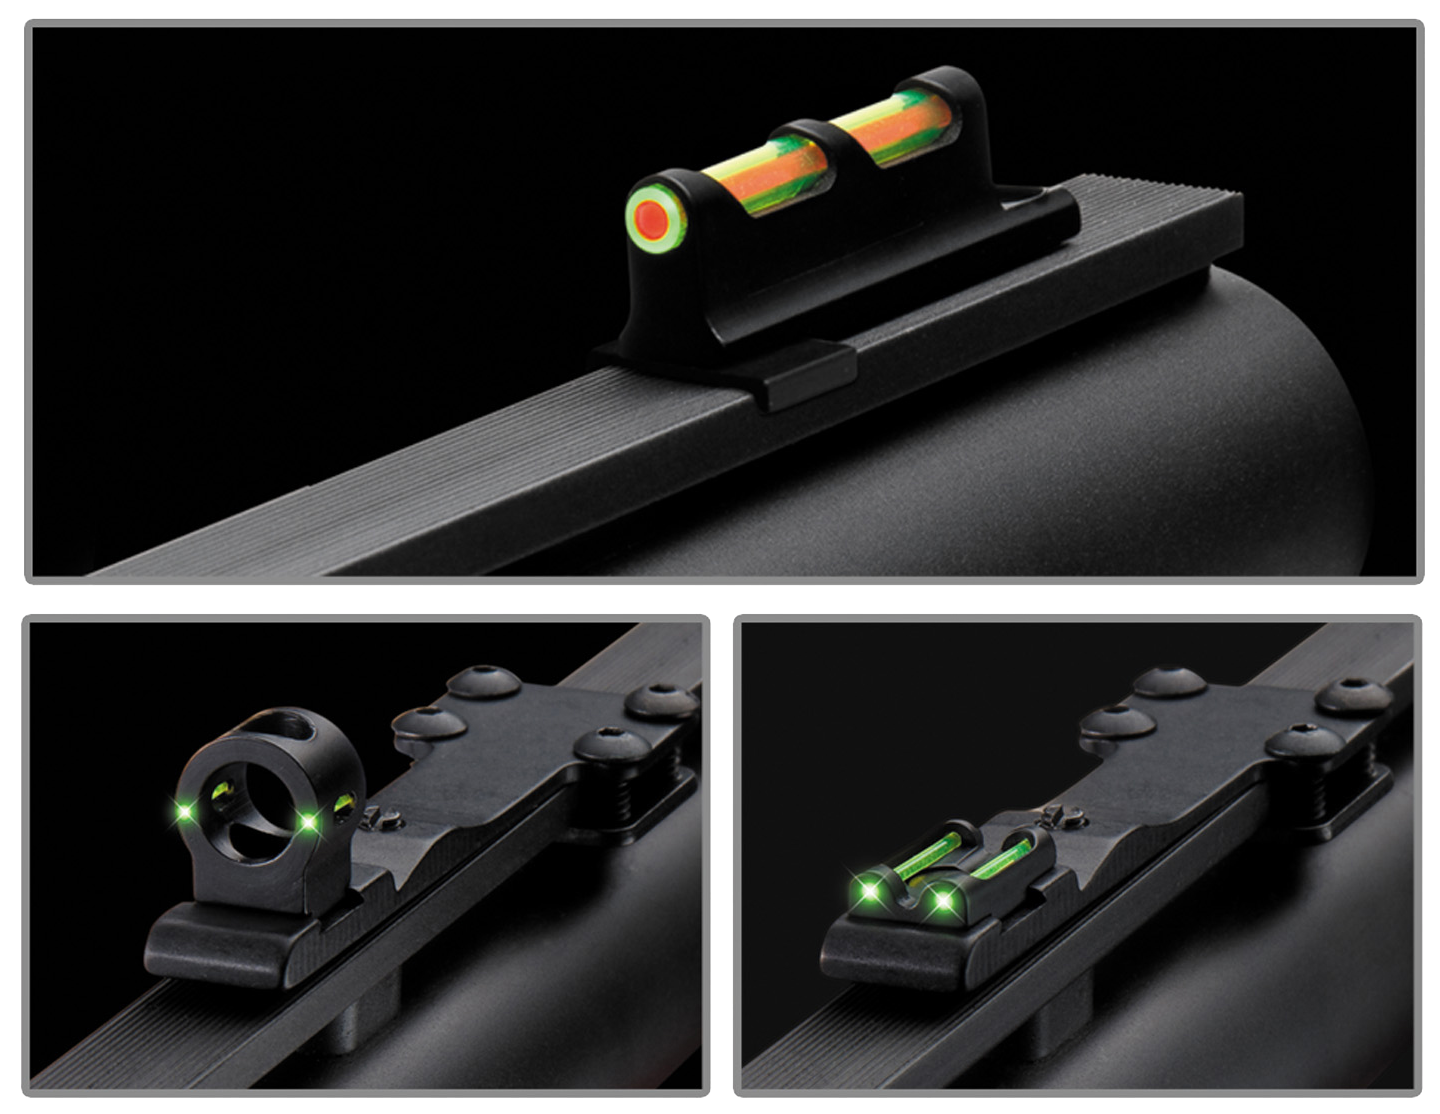 Truglo TG950XD Tru-Bead Turkey Universal Shotgun Sight - Dual-Color with Ghost Ring Shotgun Fiber Optic Green/Red Front/Green Rear Black